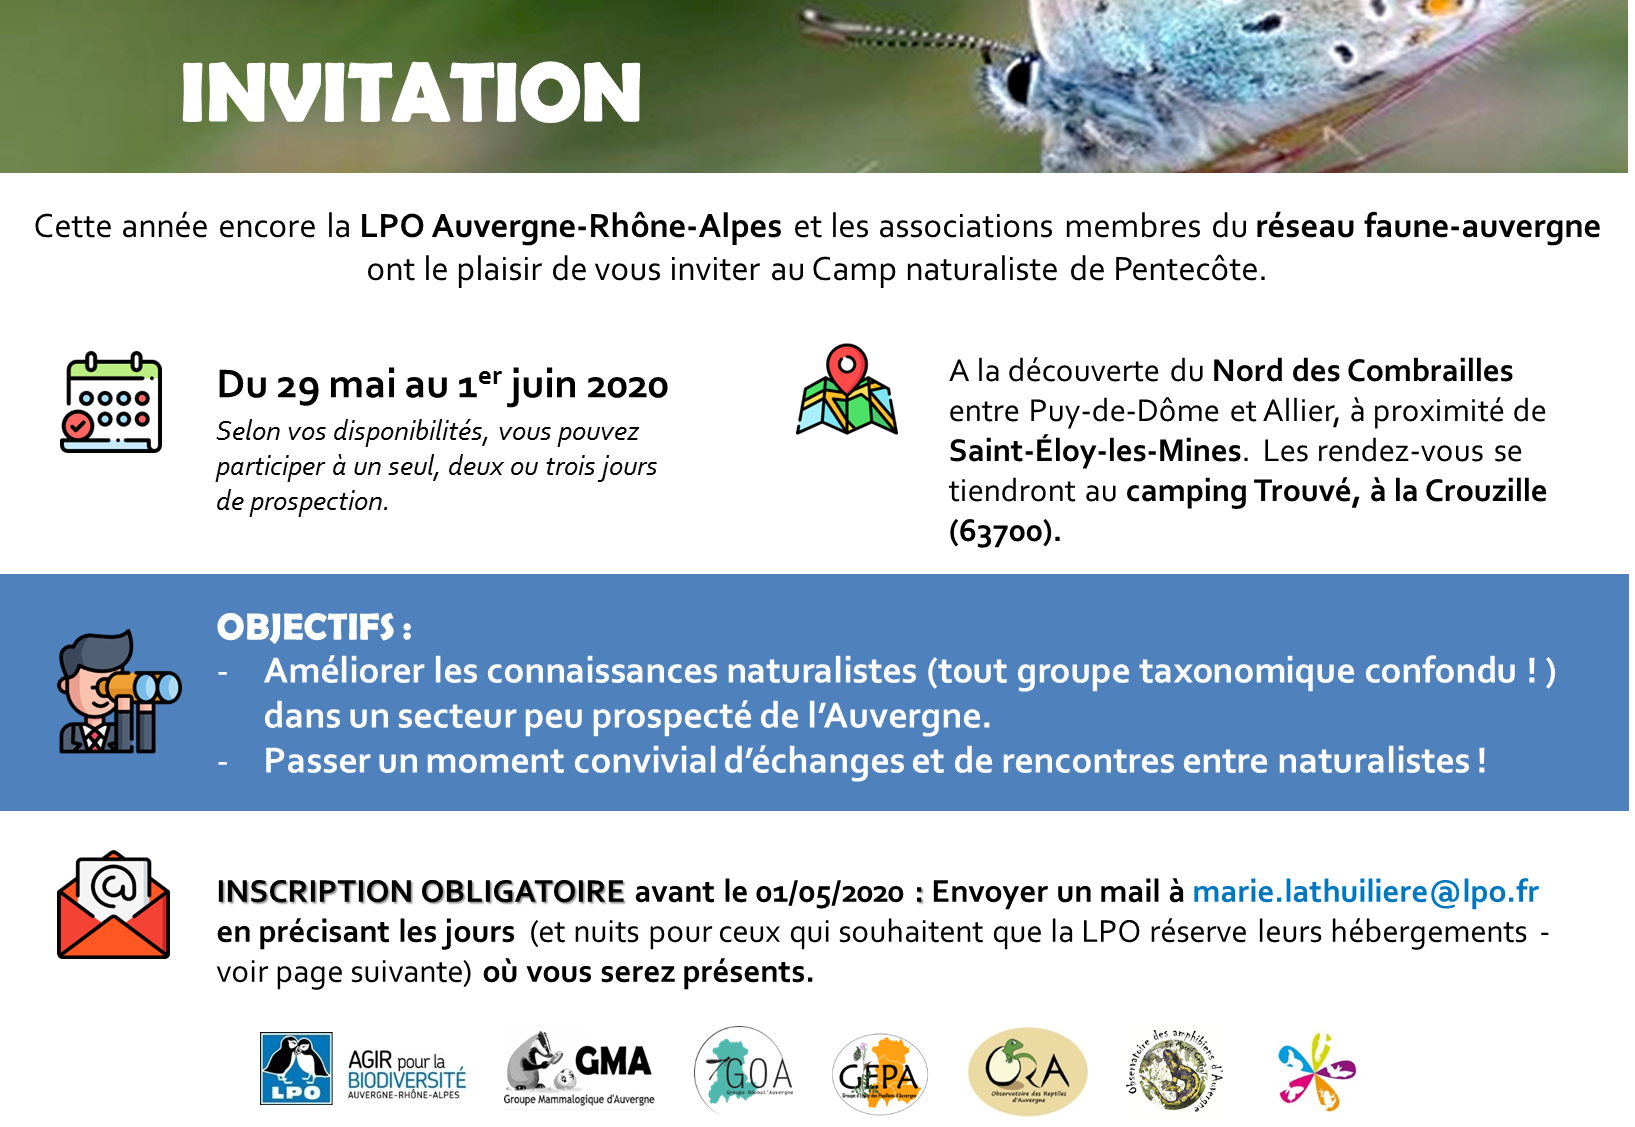 http://files.biolovision.net/www.faune-auvergne.org/userfiles/Inviationpage2_2.png